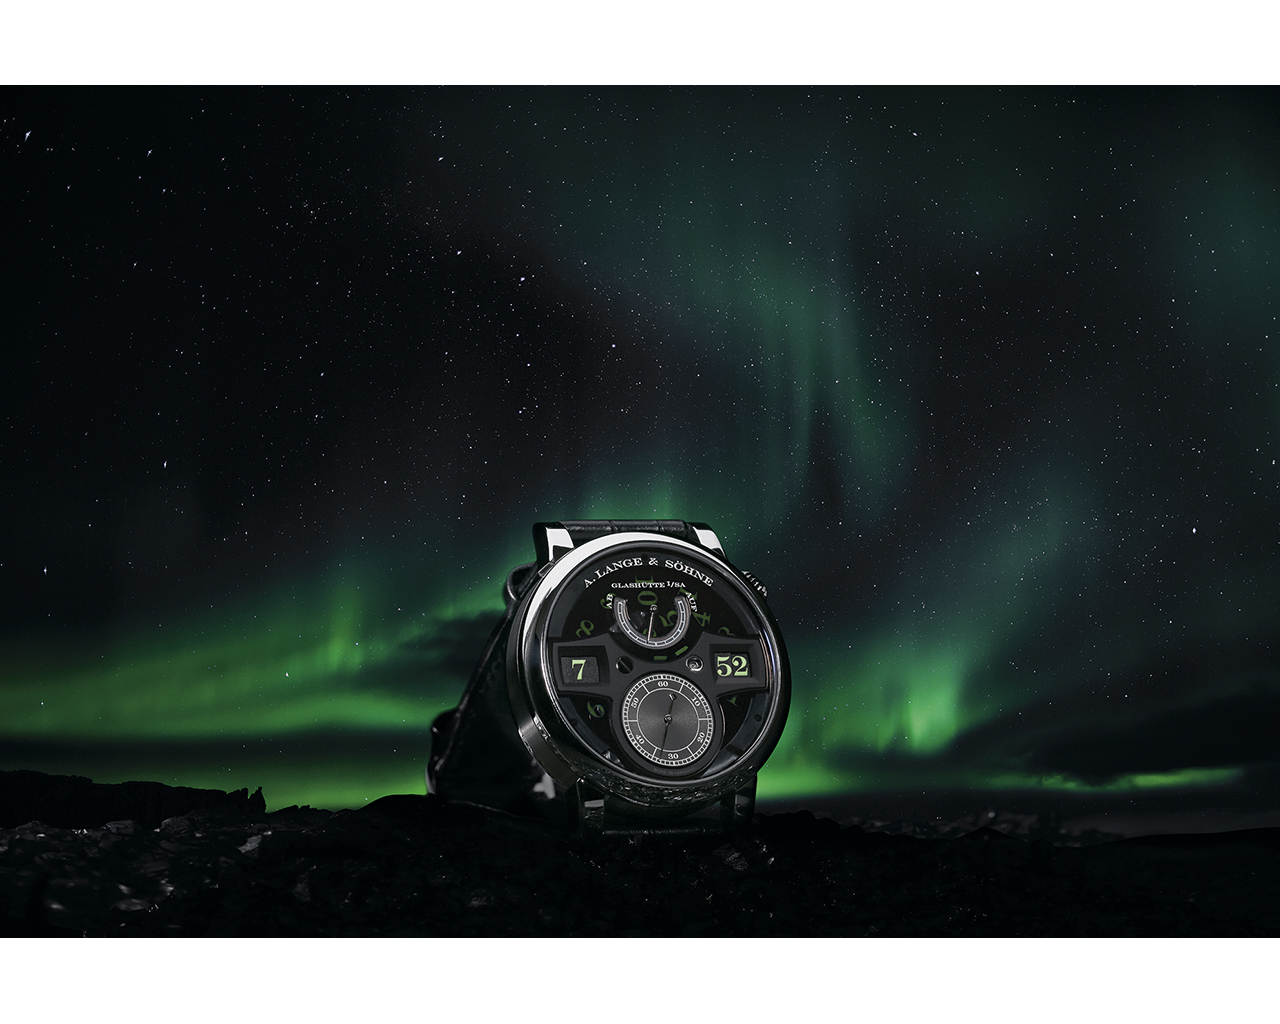 ALS_NorthernLights_1_140_035_web